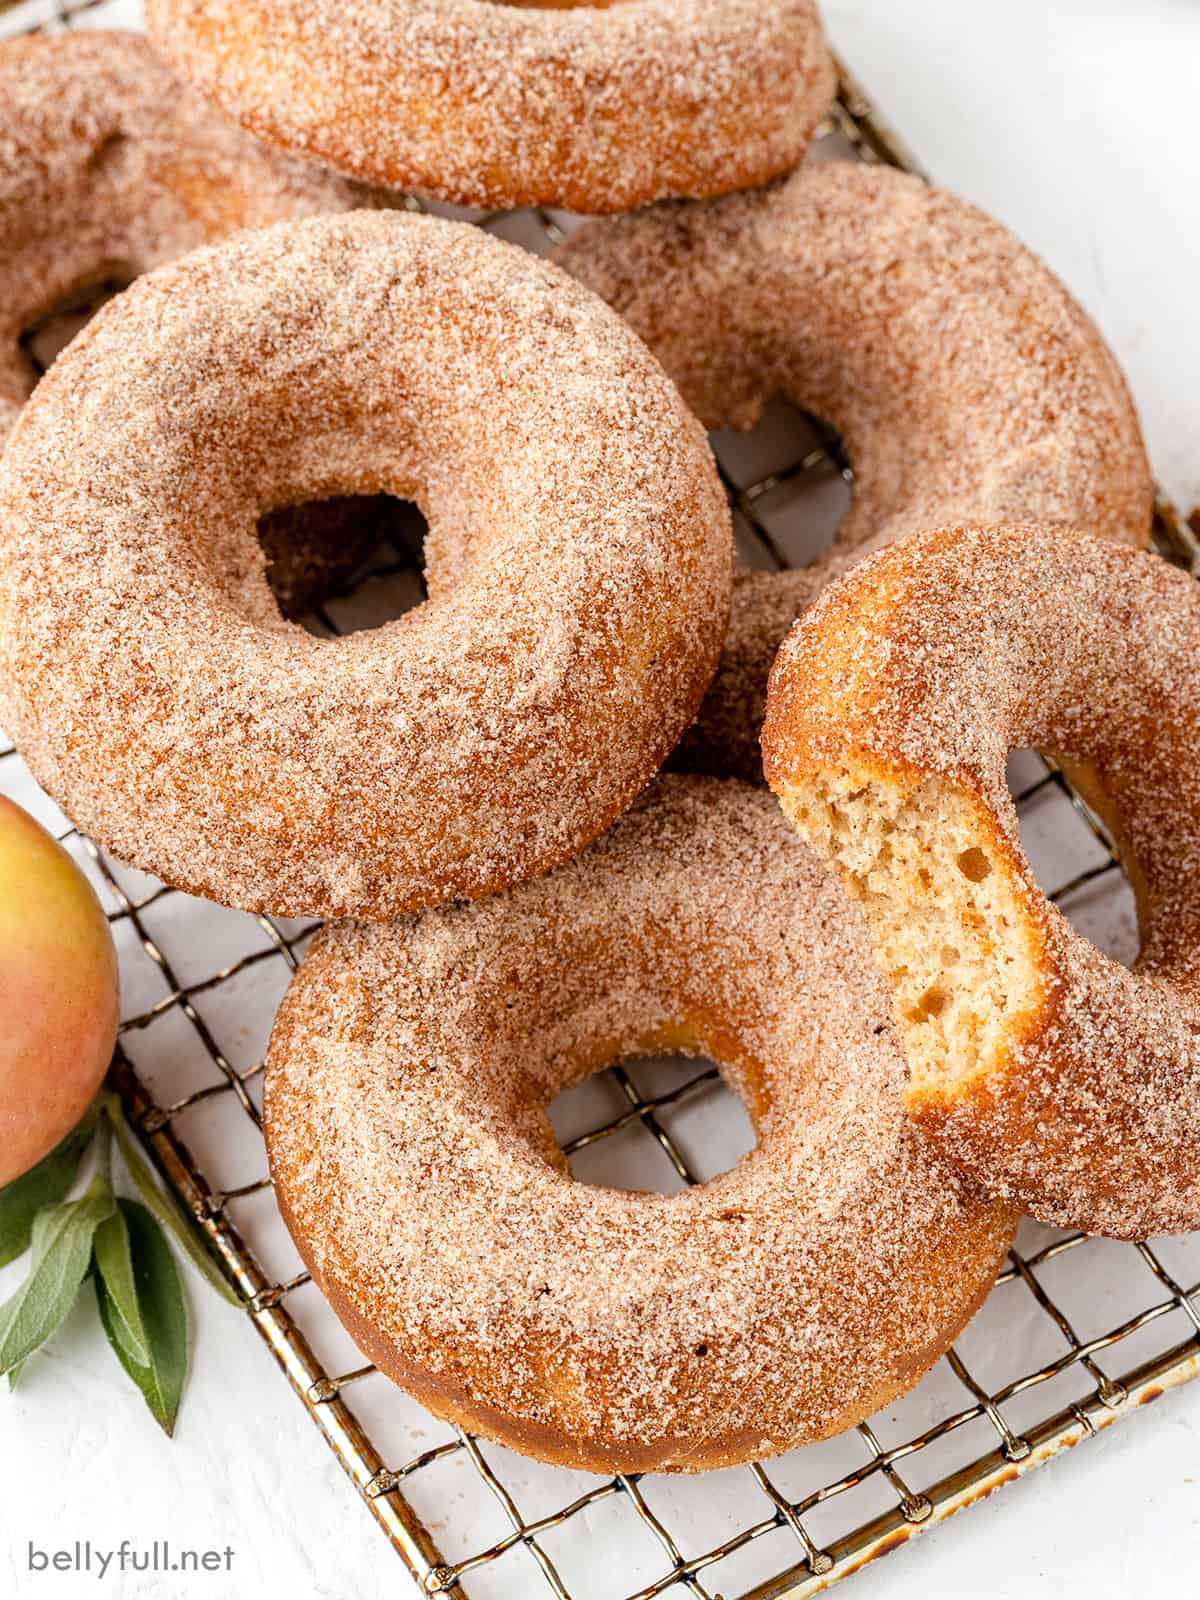 Close-up of baked apple cider donuts with one missing a bite